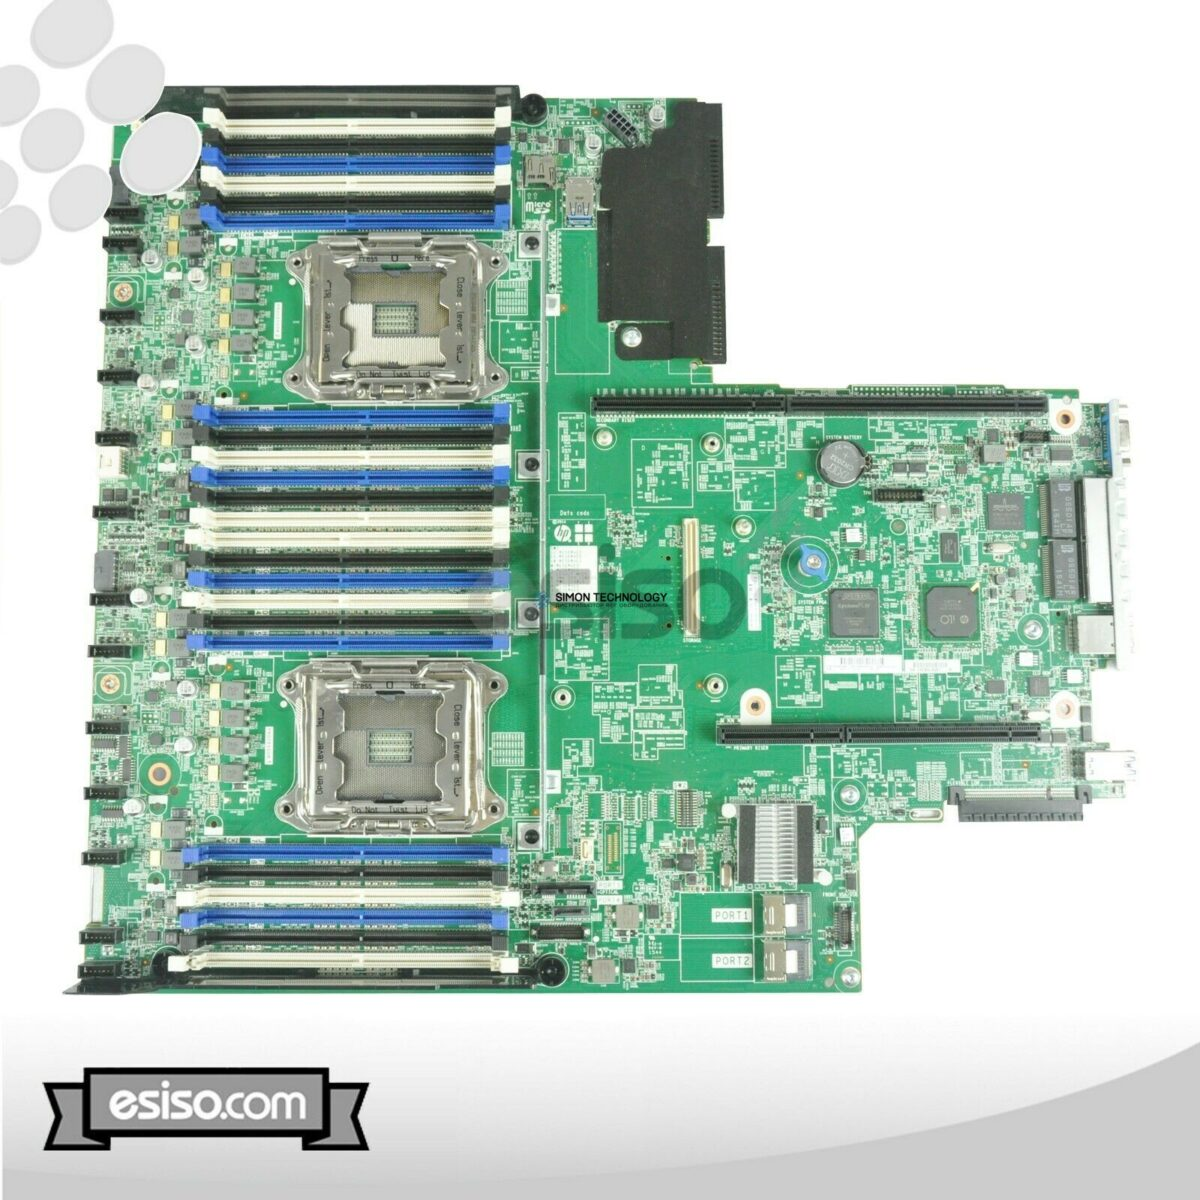 HP HP DL360/DL380 G9 SYSTEM BOARD - UPGRADED TO V4 (843307-001-EB)